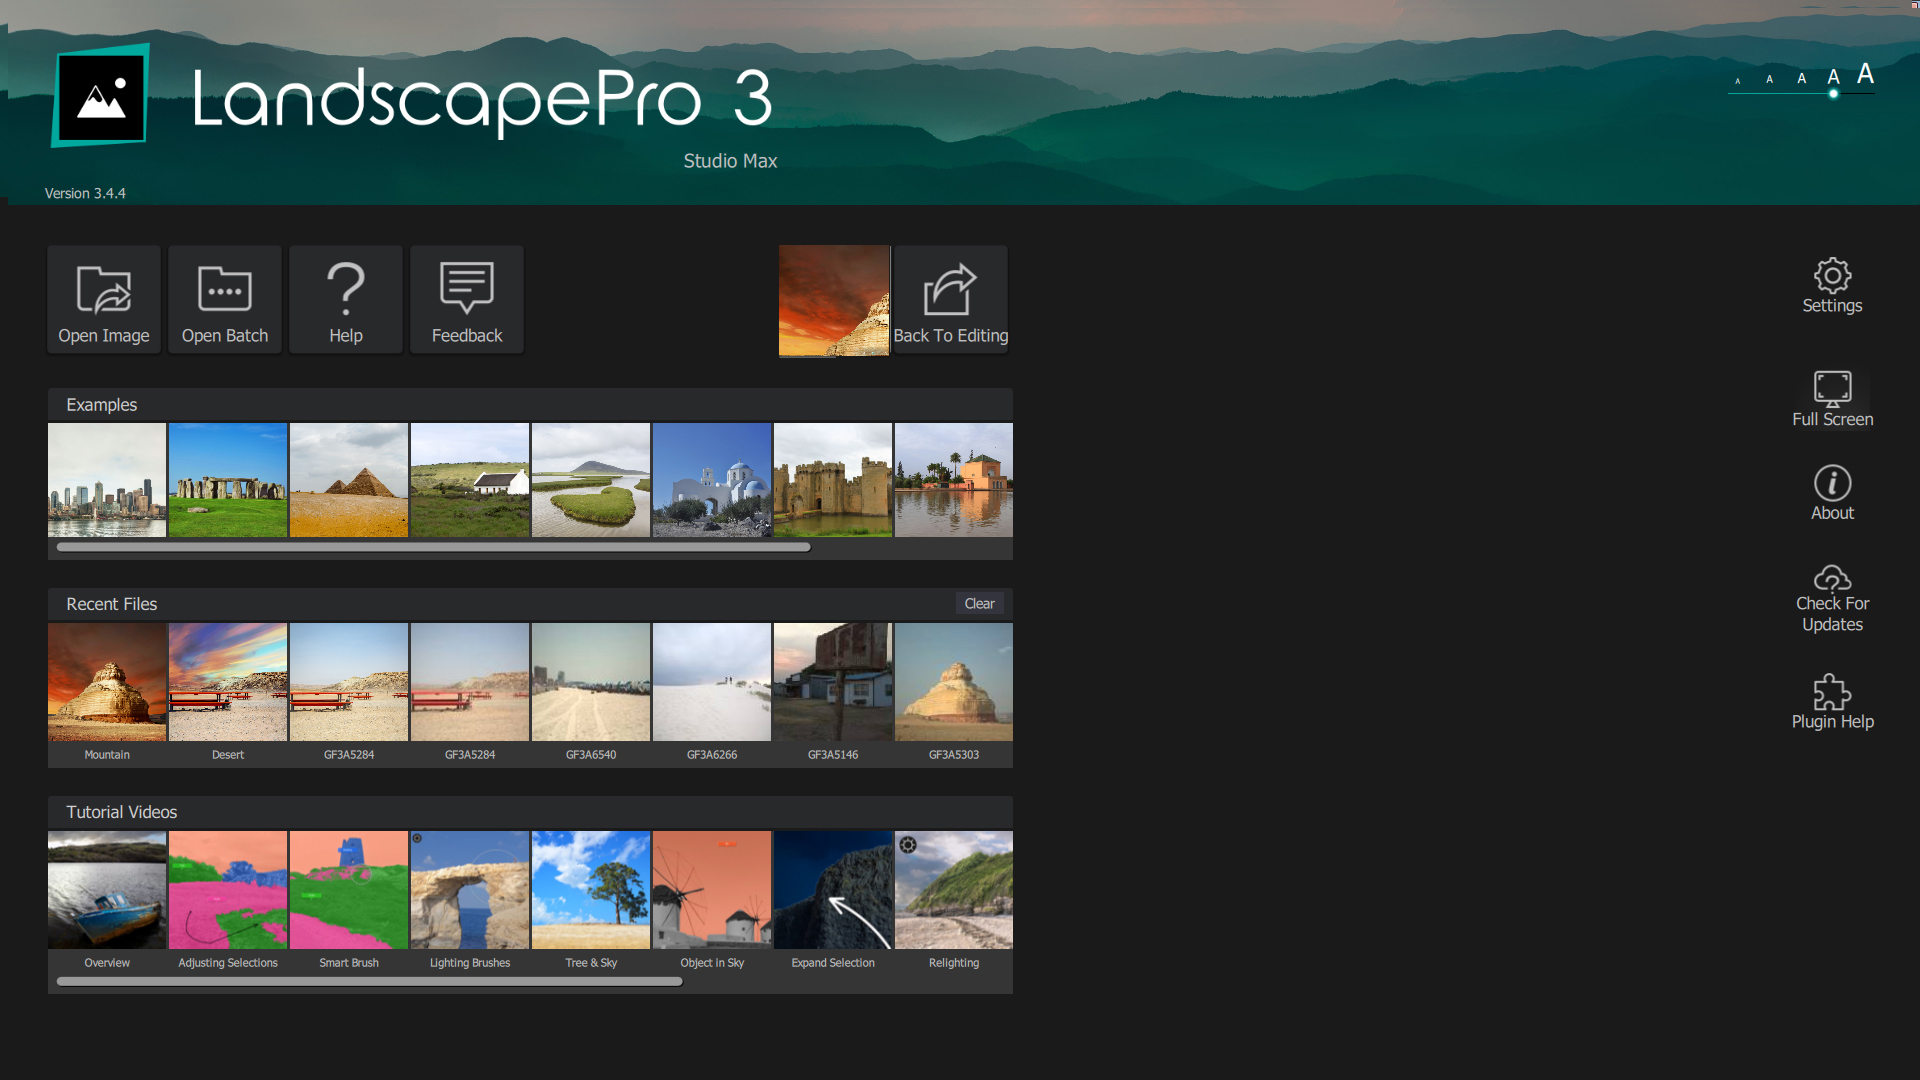 Landscape Pro Studio Max 3 photo editing software review – The Gadgeteer